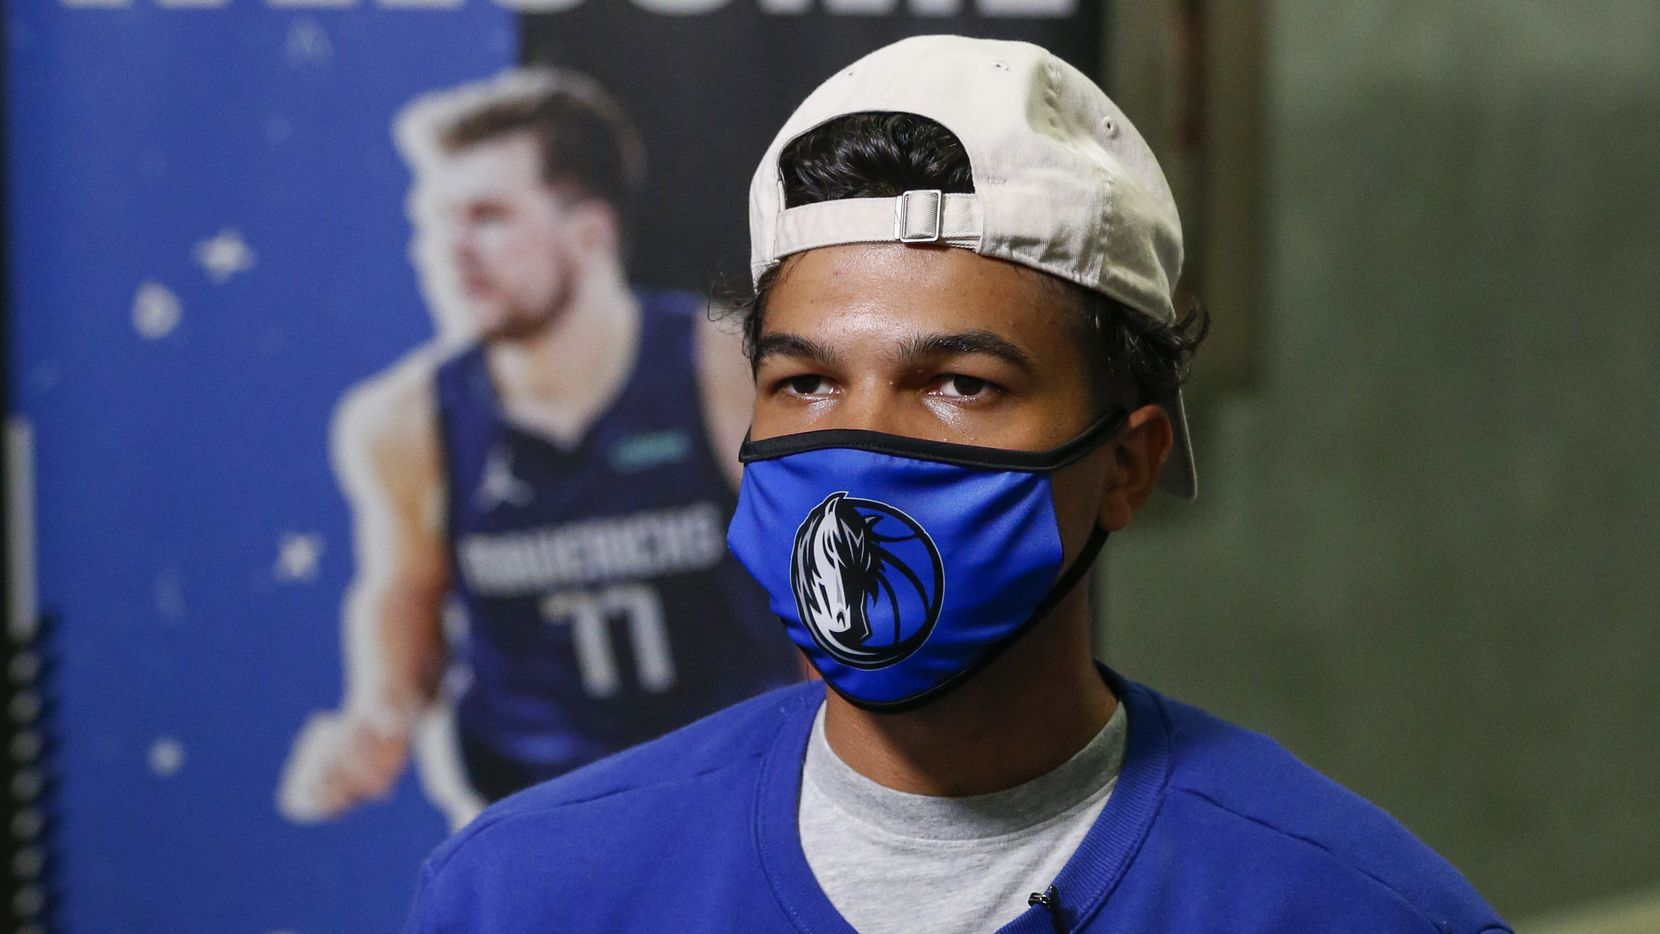 Dallas Mavericks guard Tyrell Terry sits for an interview during a Mavs Academy Hoop Camp at Plano Sports Authority on Thursday, July 8, 2021, in Plano, Texas.